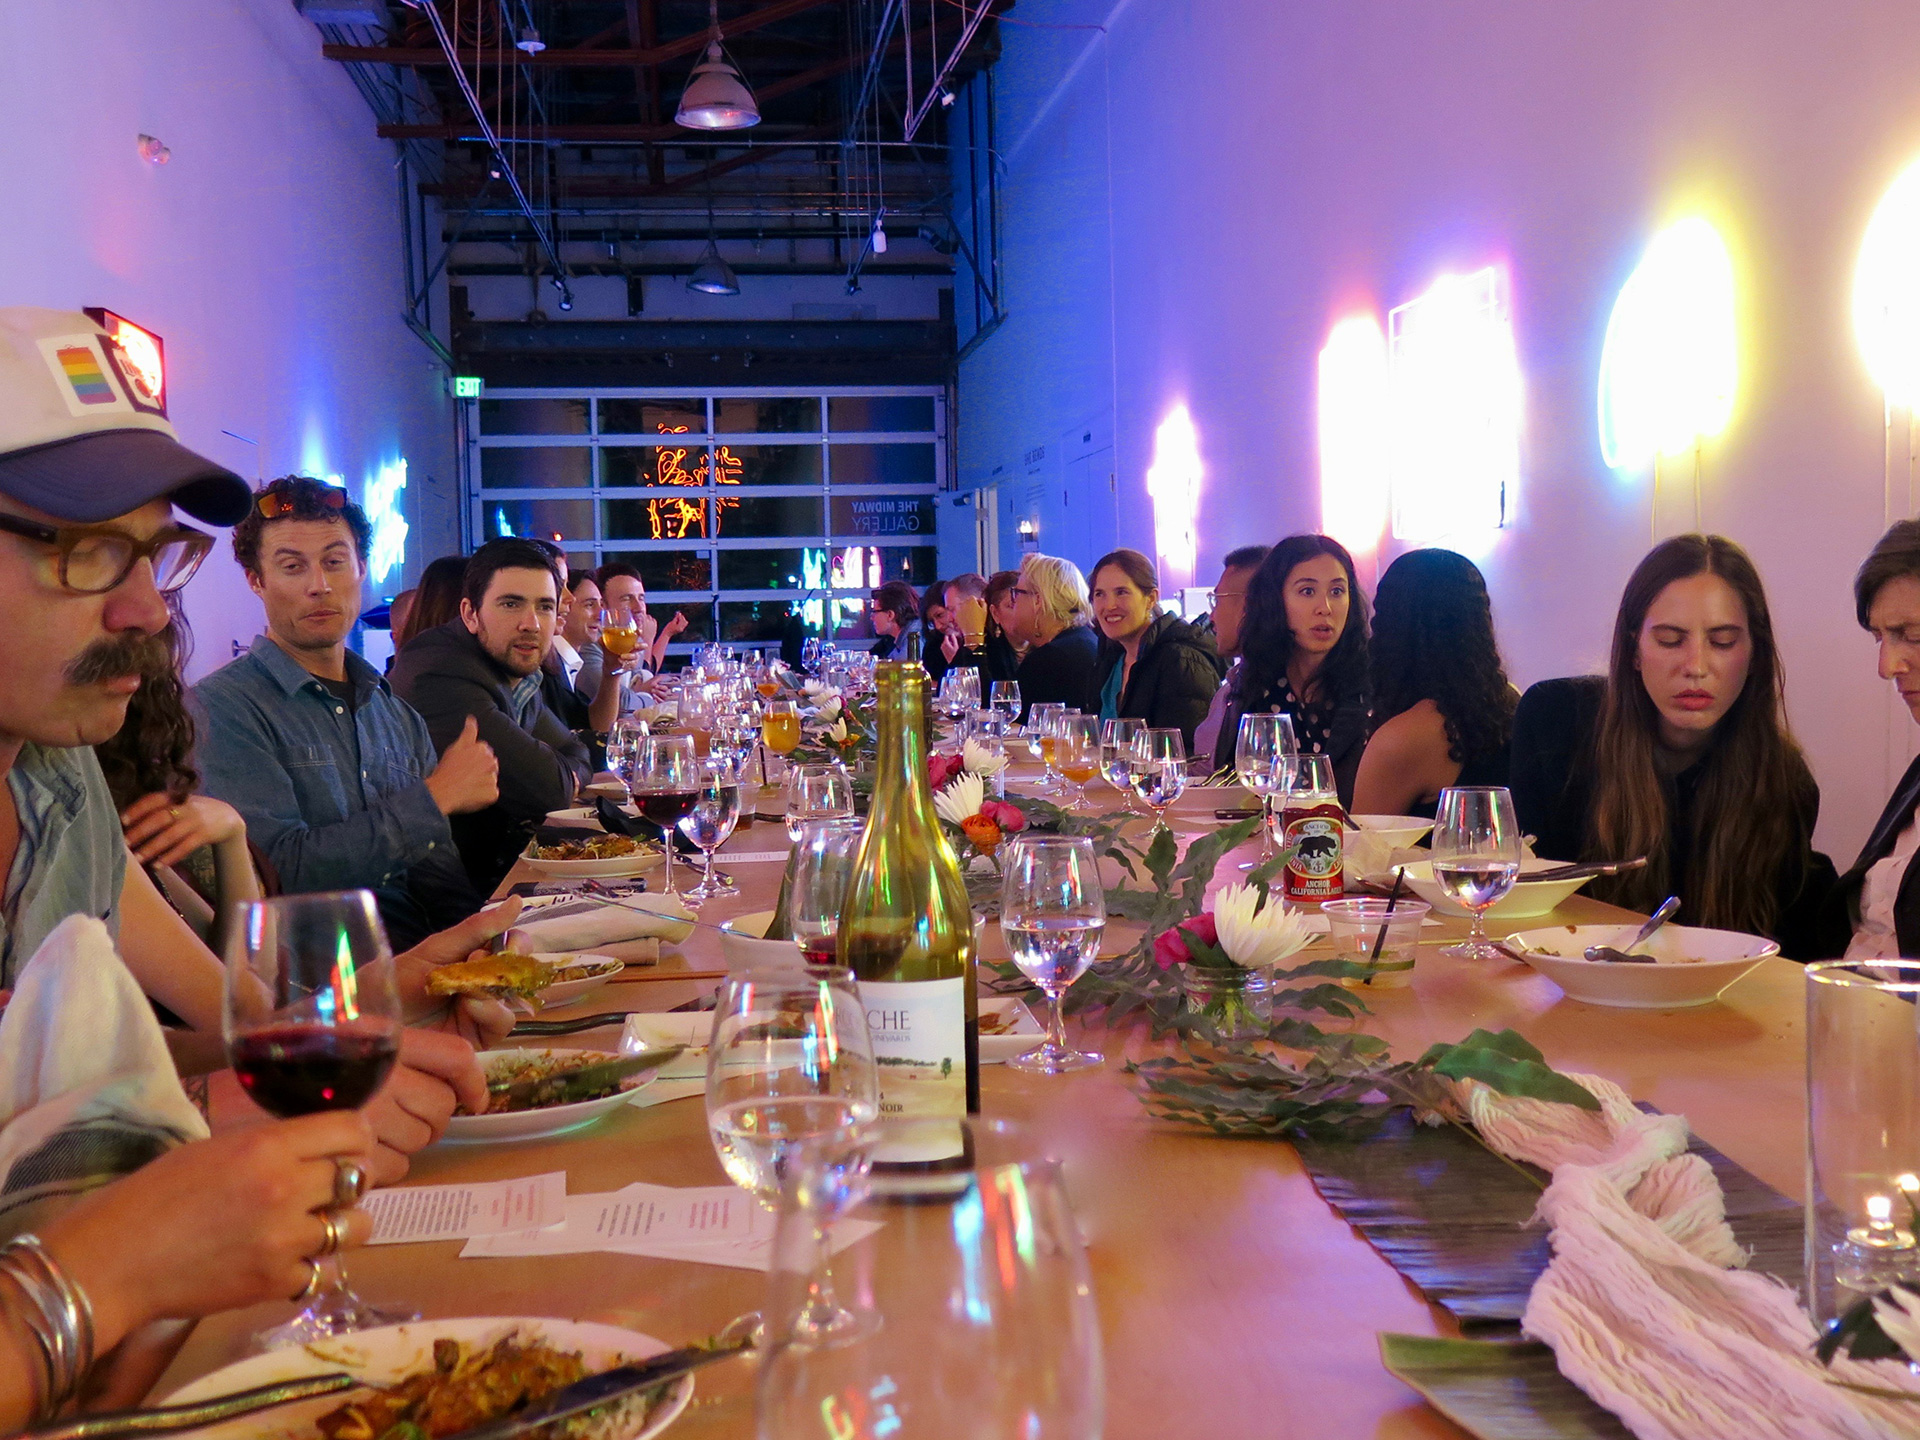 The last Midway Gallery dinner during the She Bends neon show.